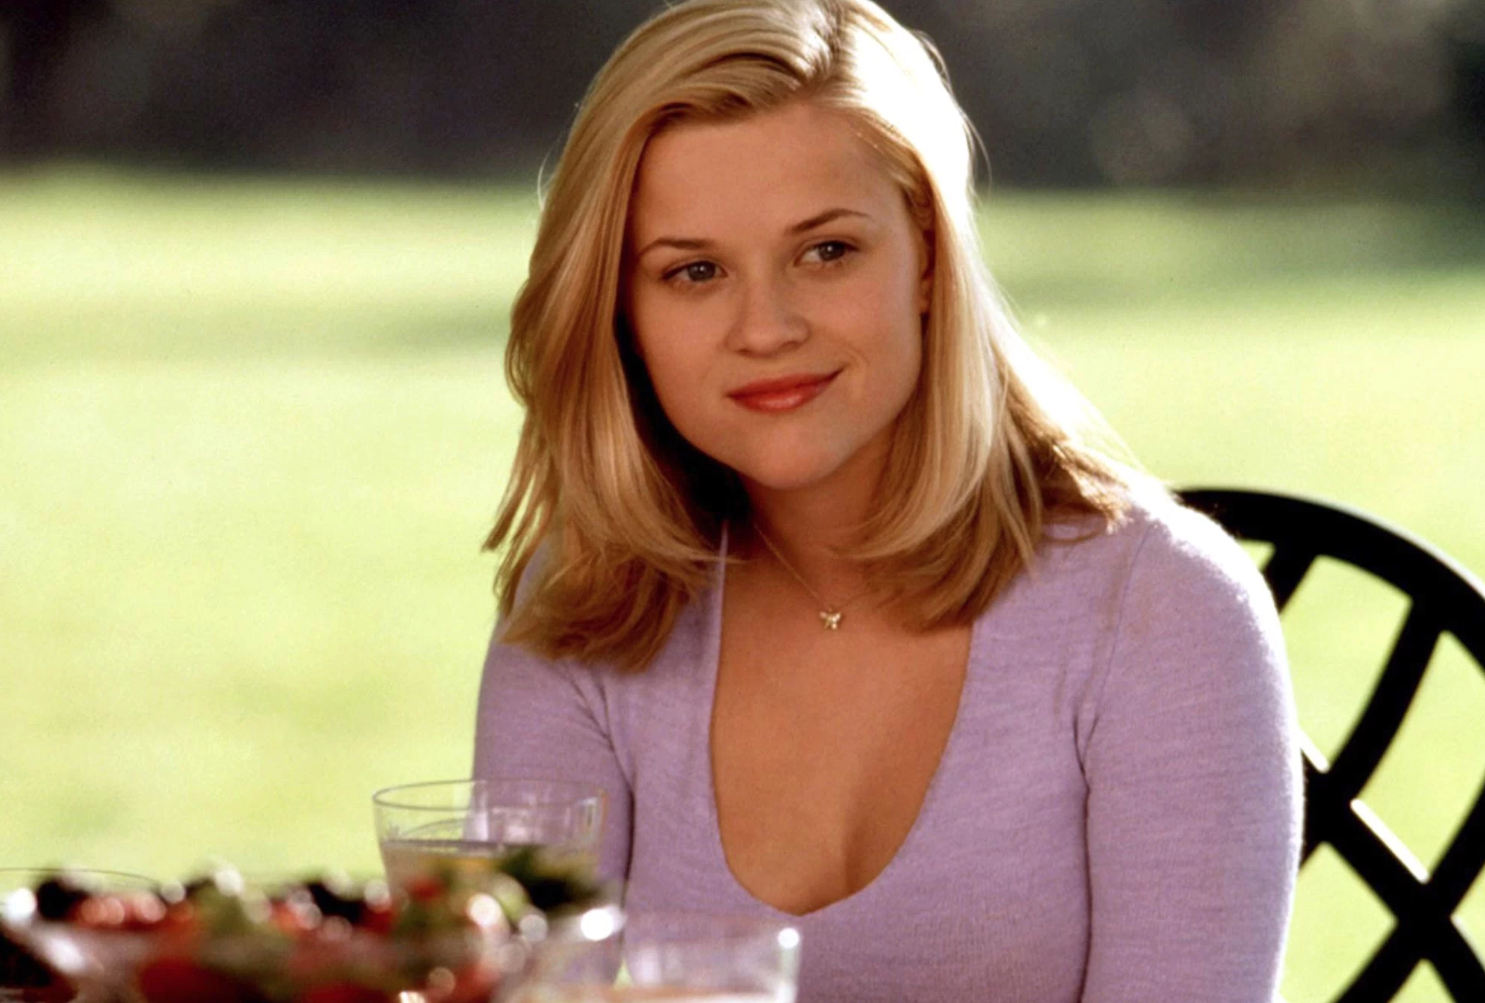 I Binged Reese Witherspoon Movies for 3 Days and Realized She's Punk AF